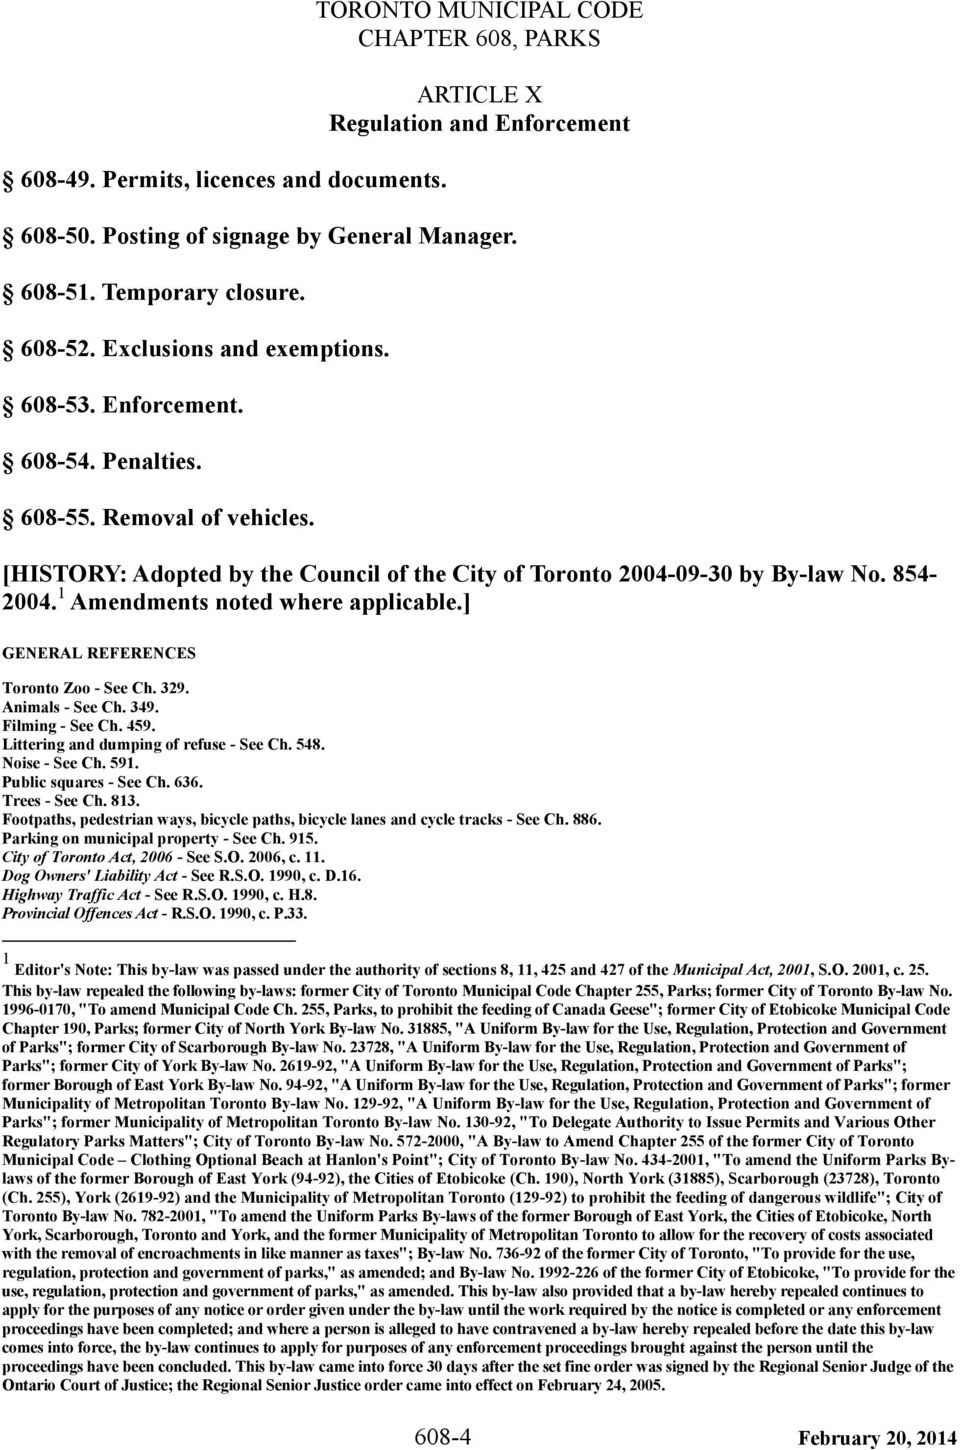 1 Amendments noted where applicable.] GENERAL REFERENCES Toronto Zoo - See Ch. 329. Animals - See Ch. 349. Filming - See Ch. 459. Littering and dumping of refuse - See Ch. 548. Noise - See Ch. 591.